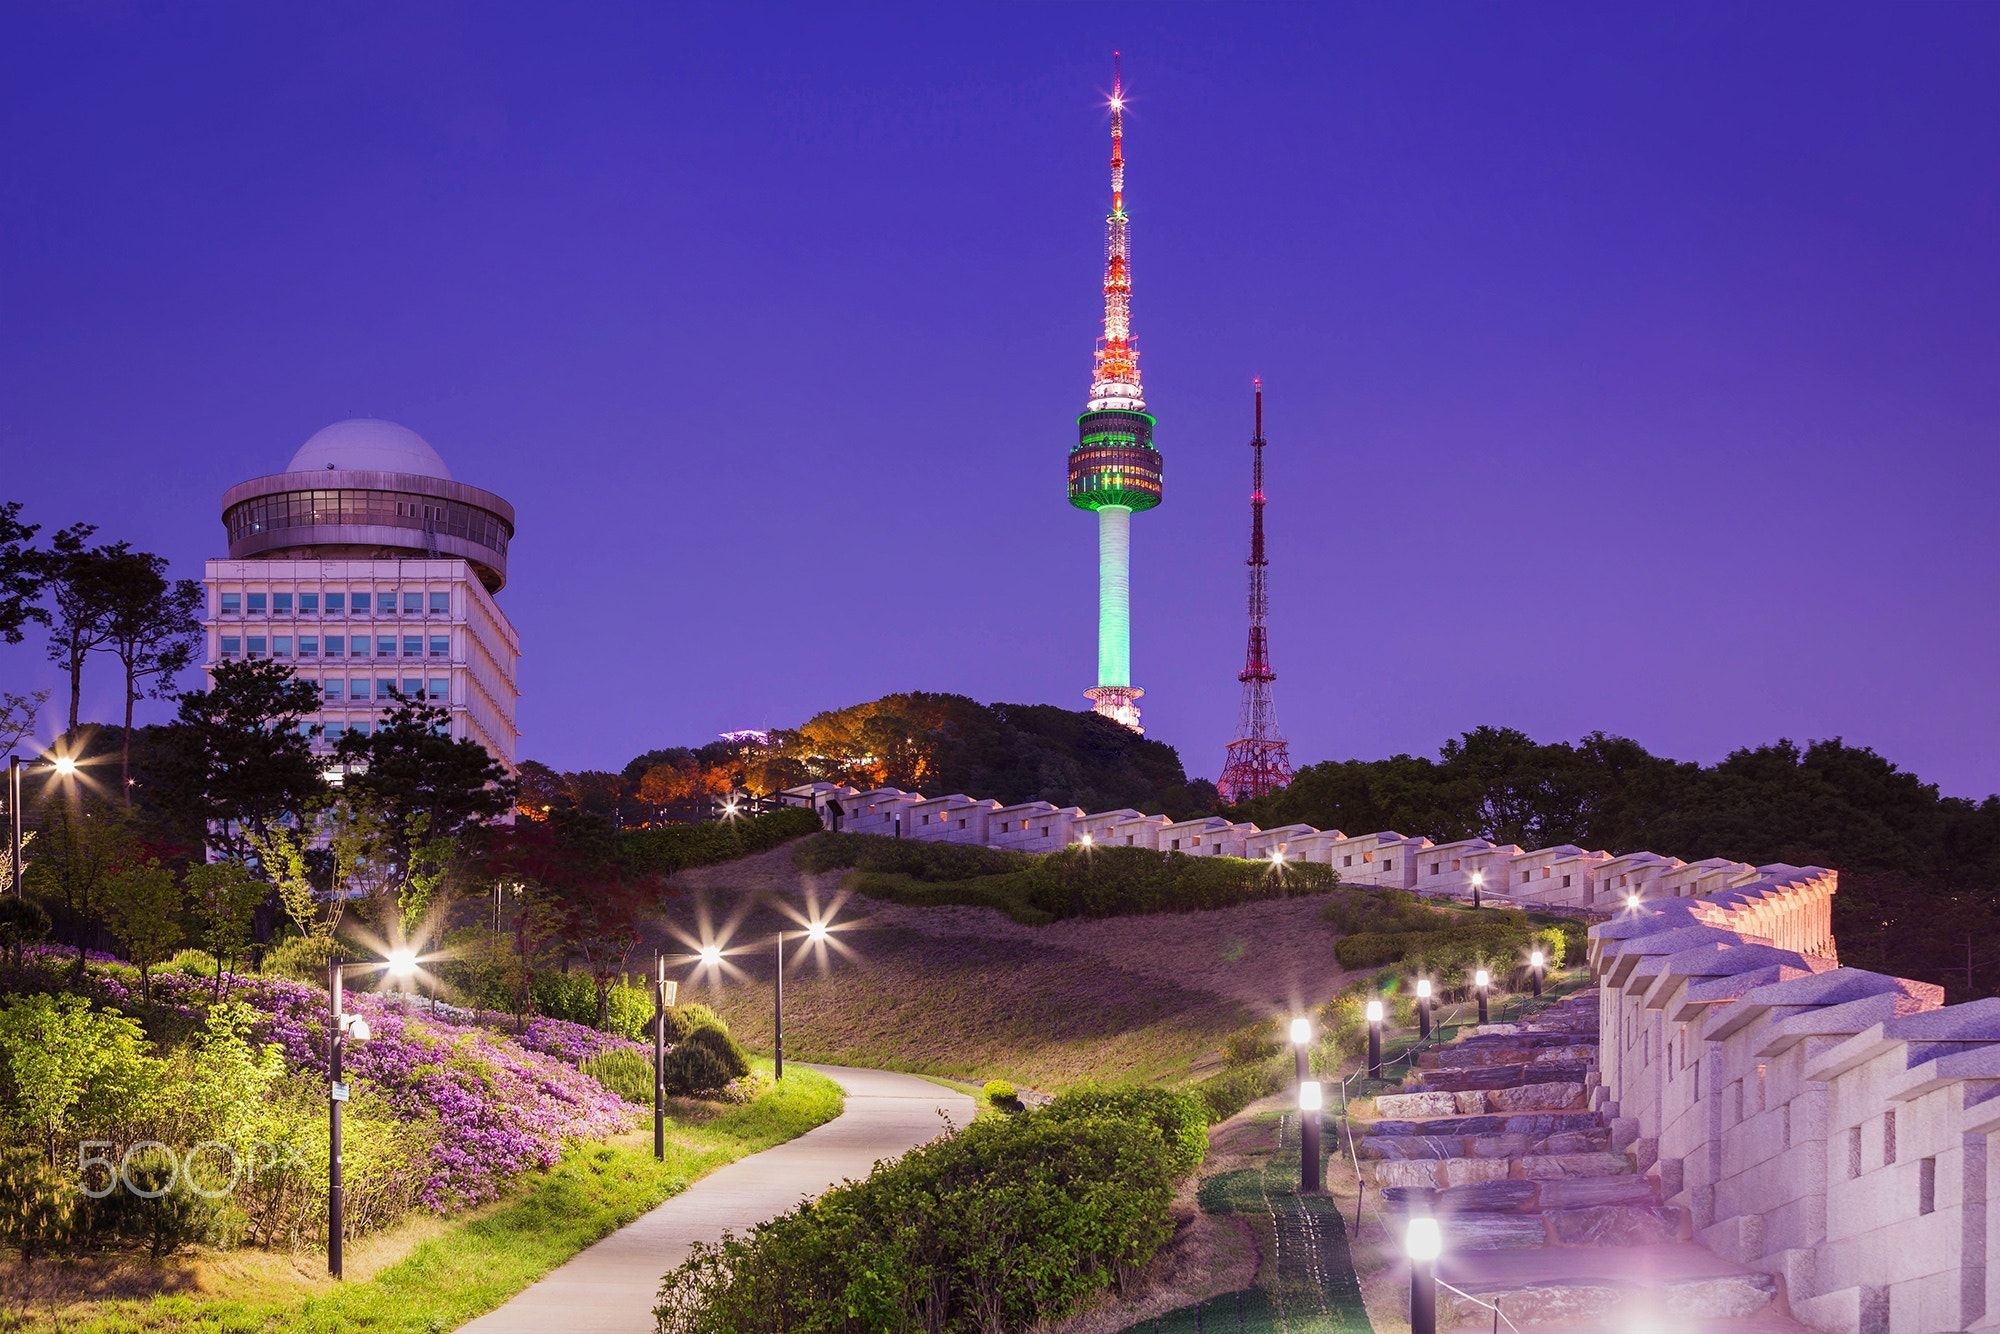 Namsan Park And N Seoul Tower Namsan Park And N Seoul Tower At Night South Korea Seoul Tempat Konser